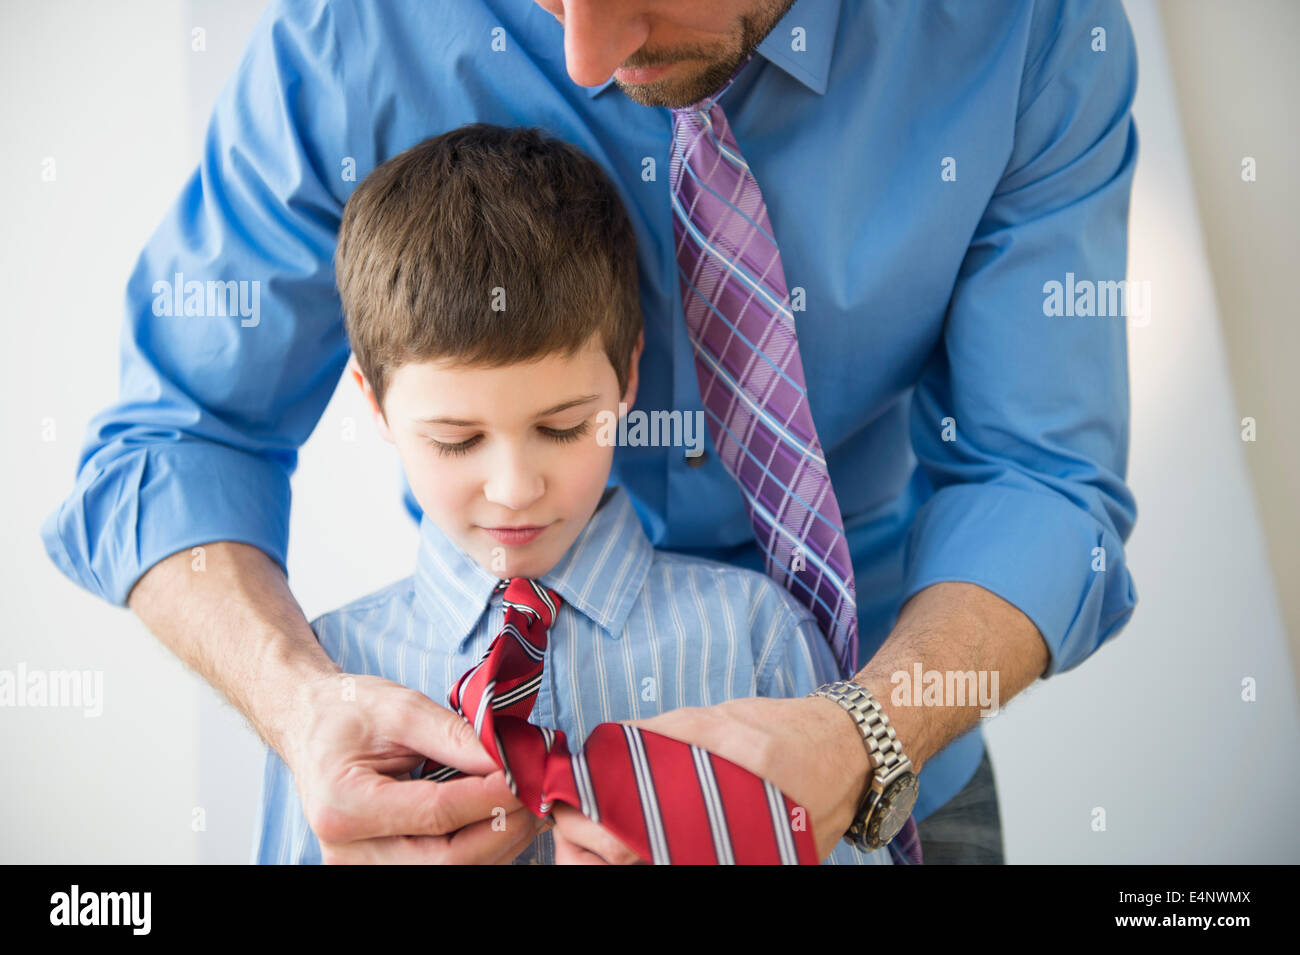 Father adjusting son's (8-9) tie - Stock Image